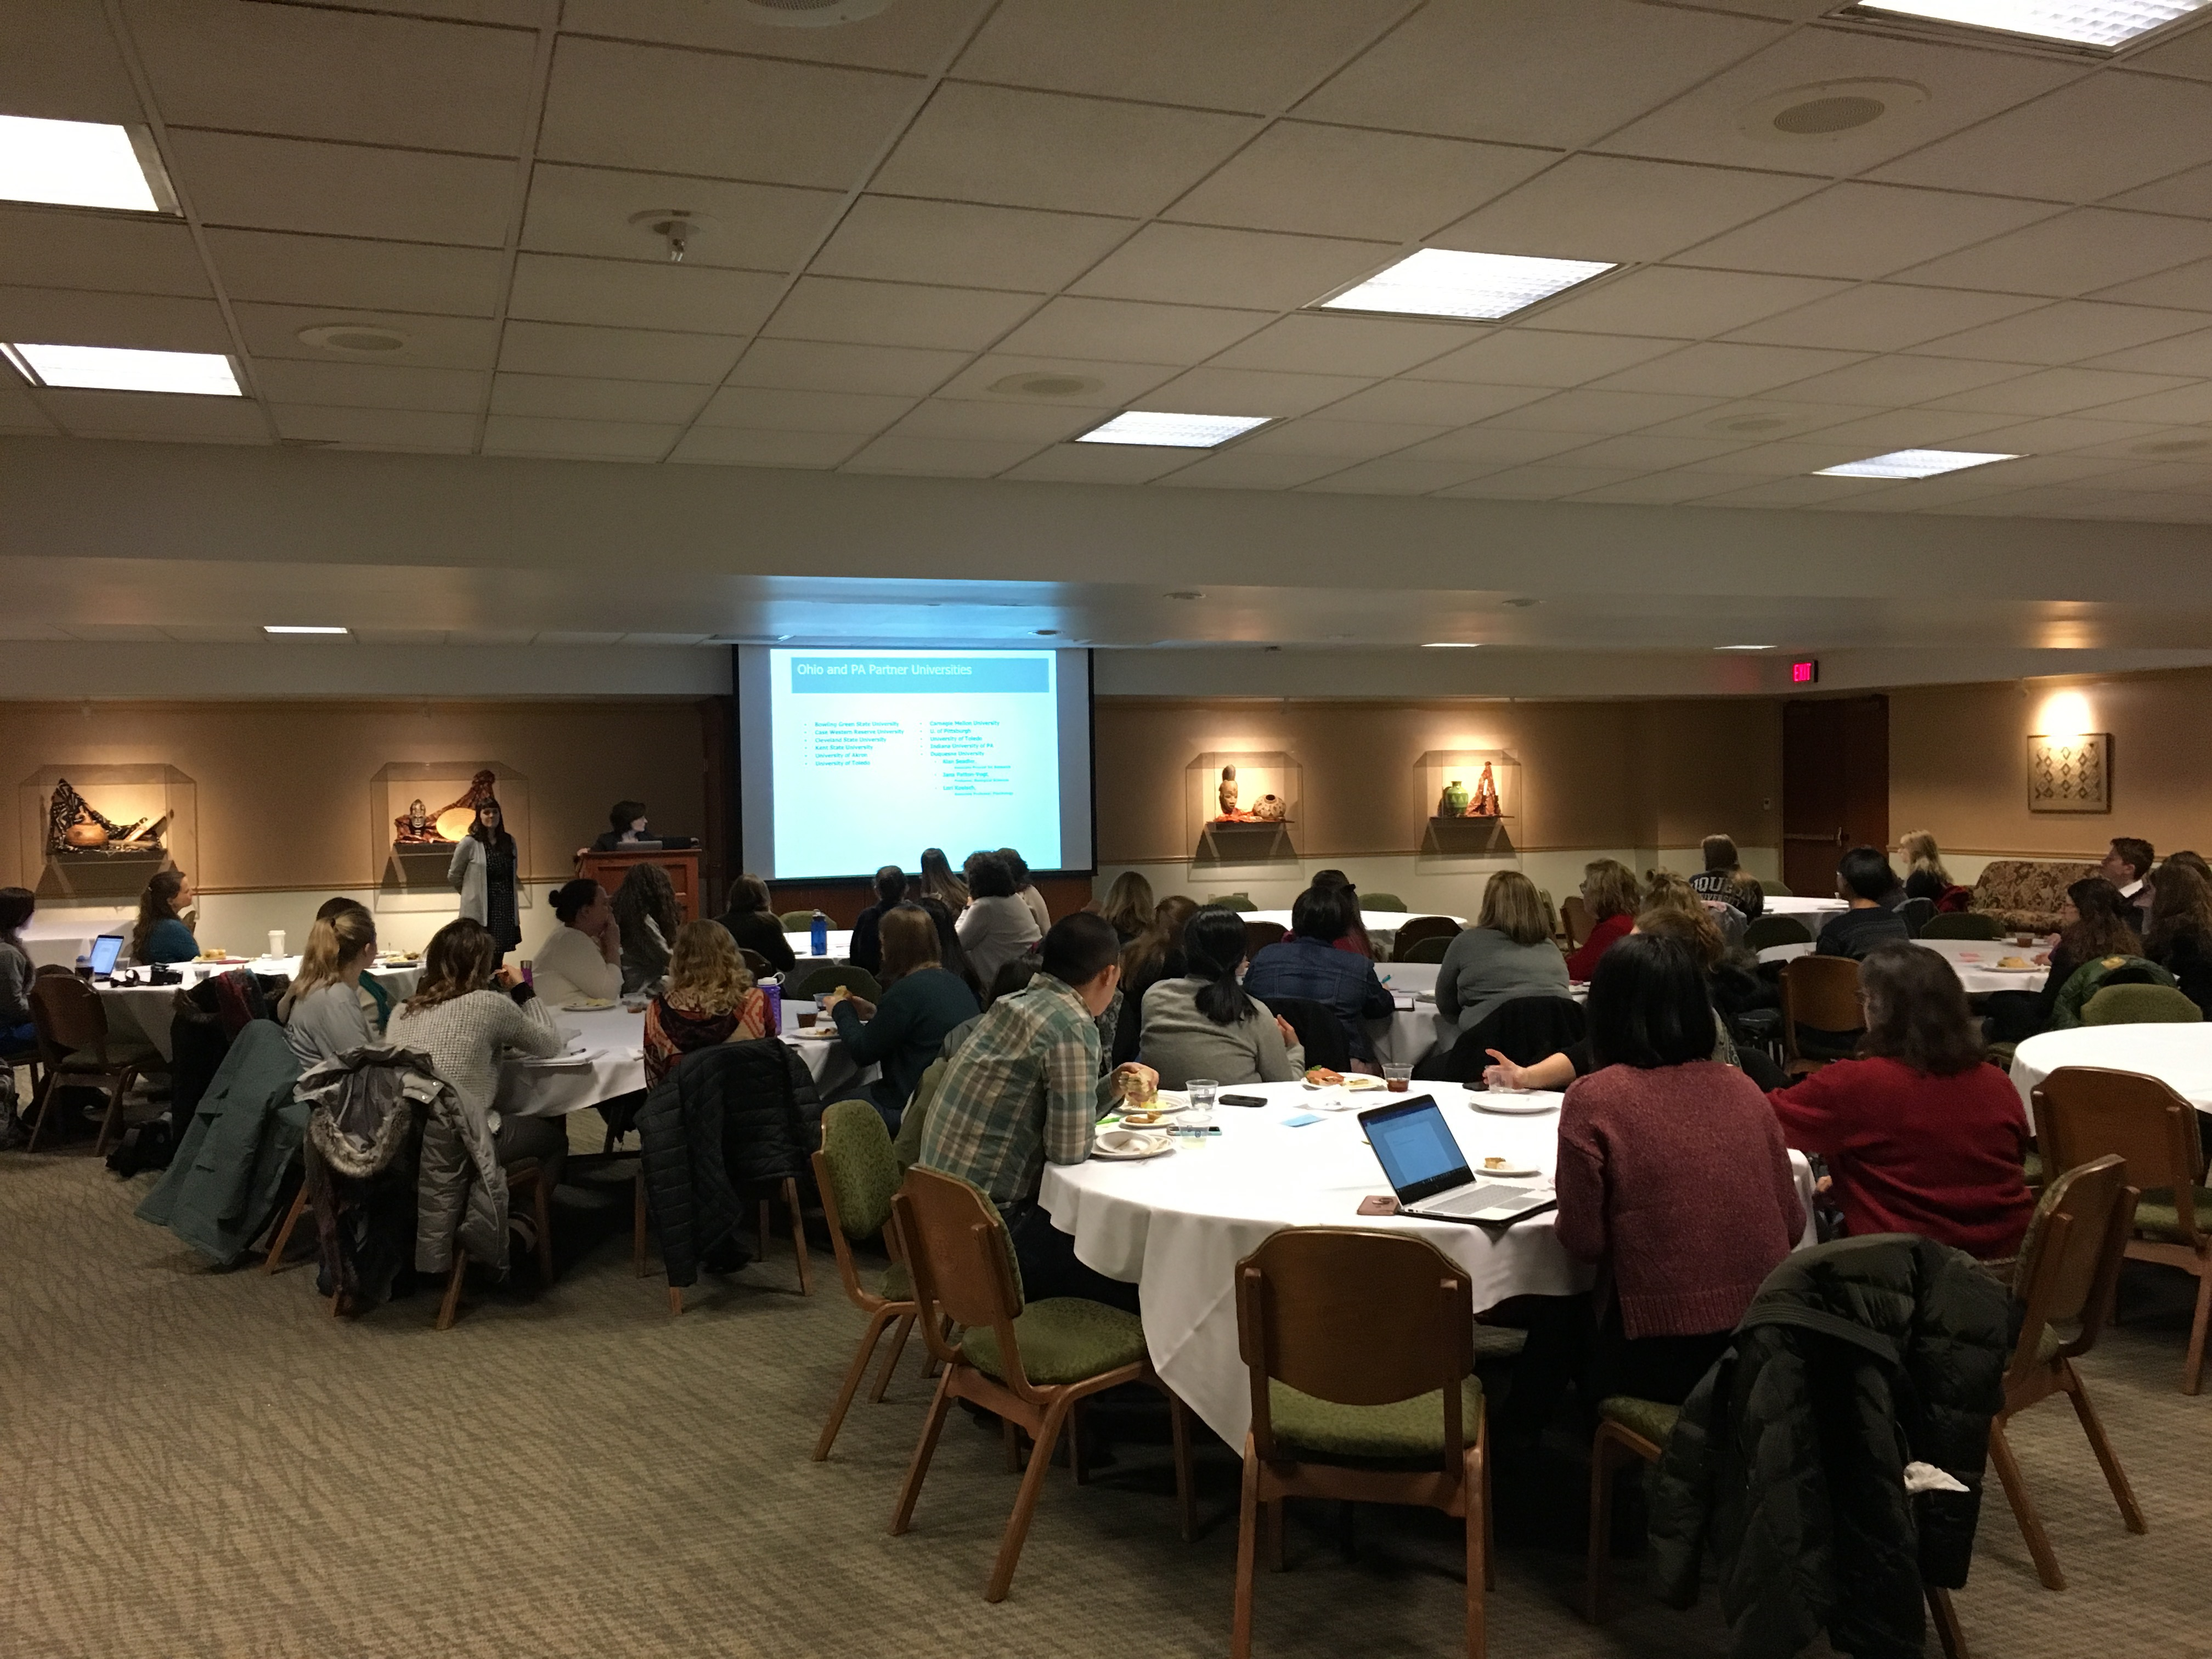 Attendees of the mentorship event included faculty and students from STEM and health-related disciplines.